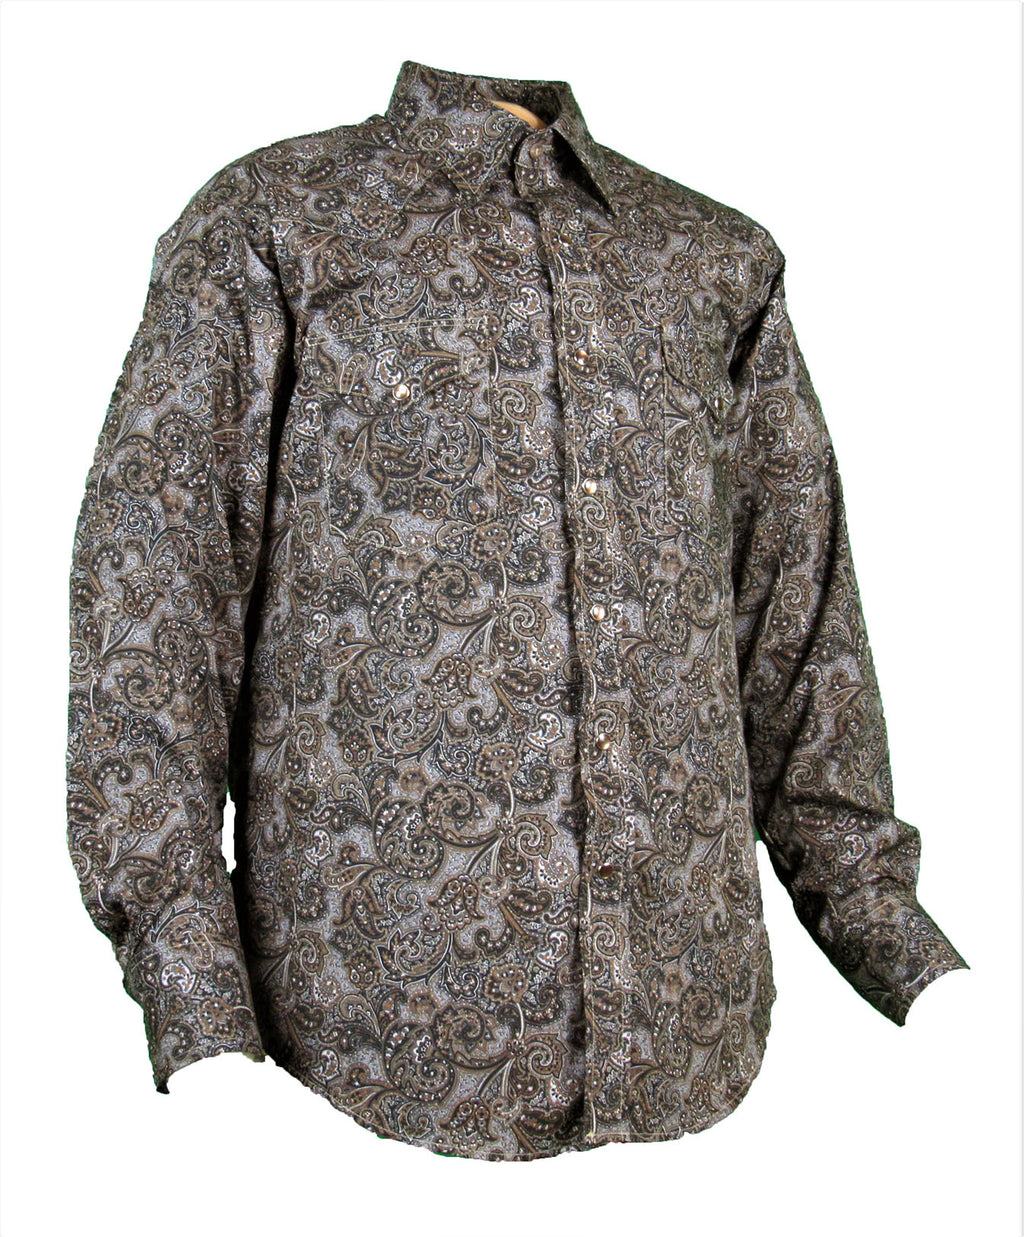 Prints - Black Paisley - Snaps - Long Sleeve